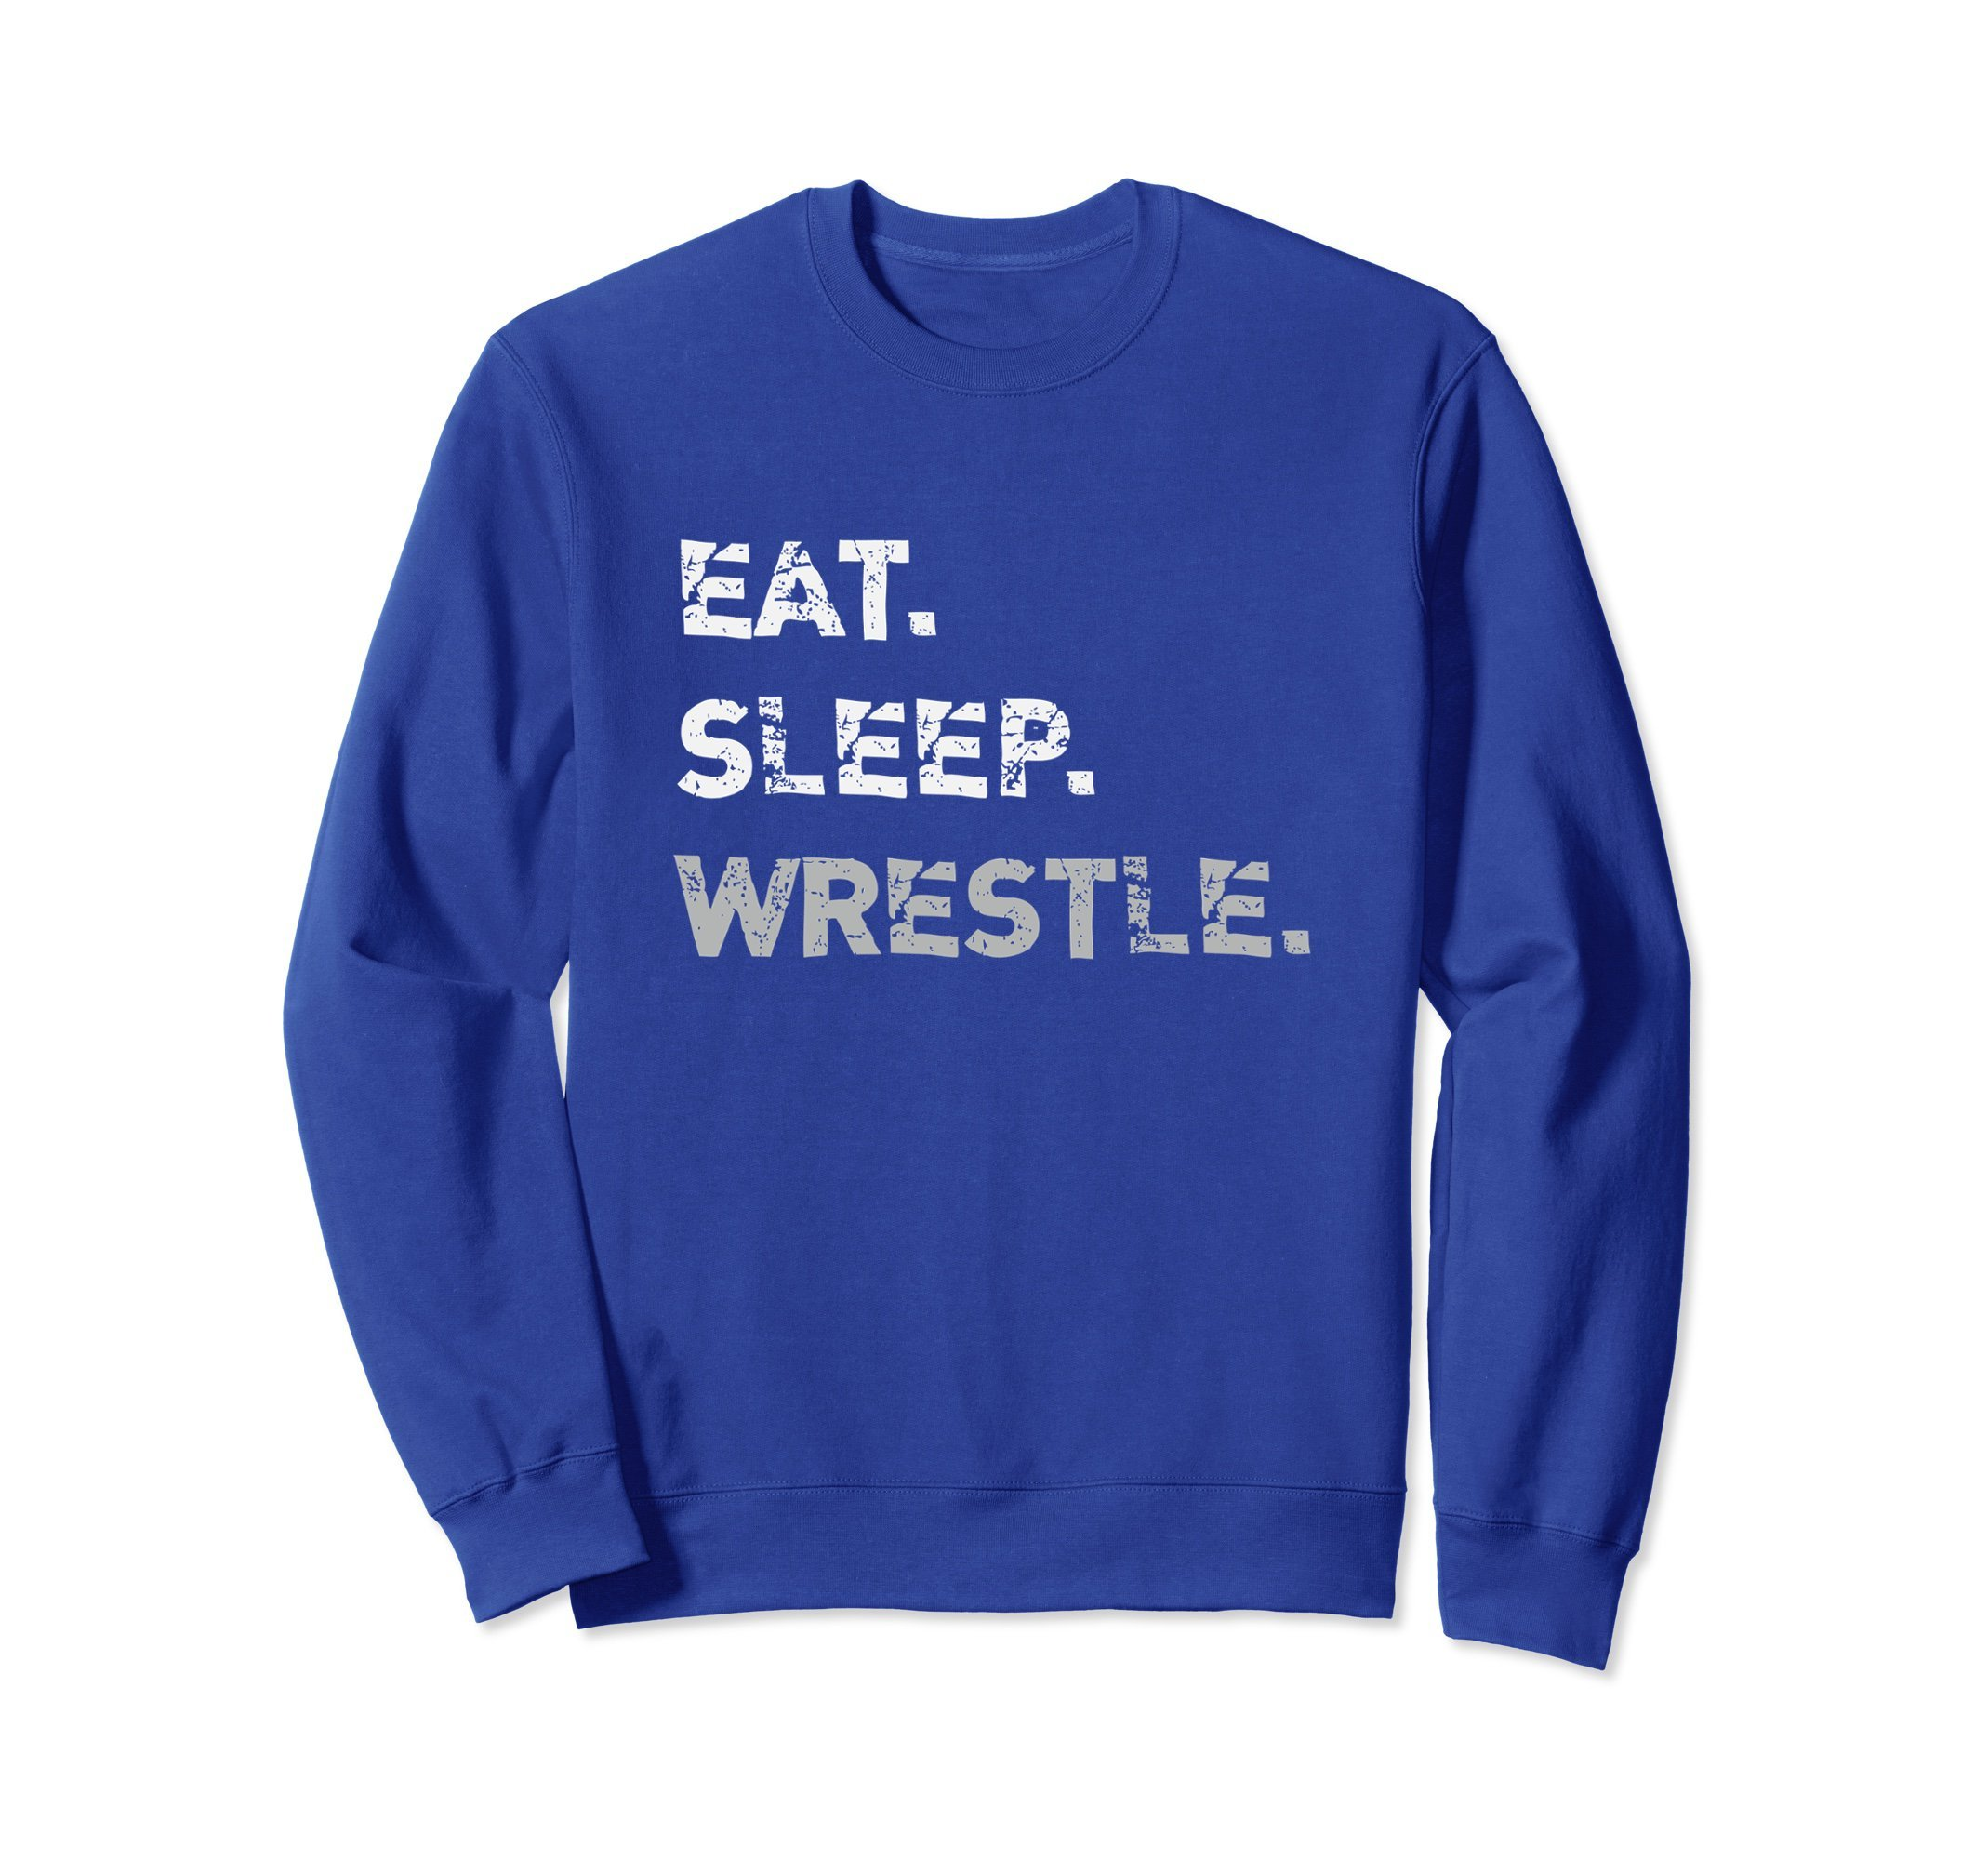 Unisex Eat Sleep Wrestle Wrestling Sweater Medium Royal Blue by Wrestling Life Shirts